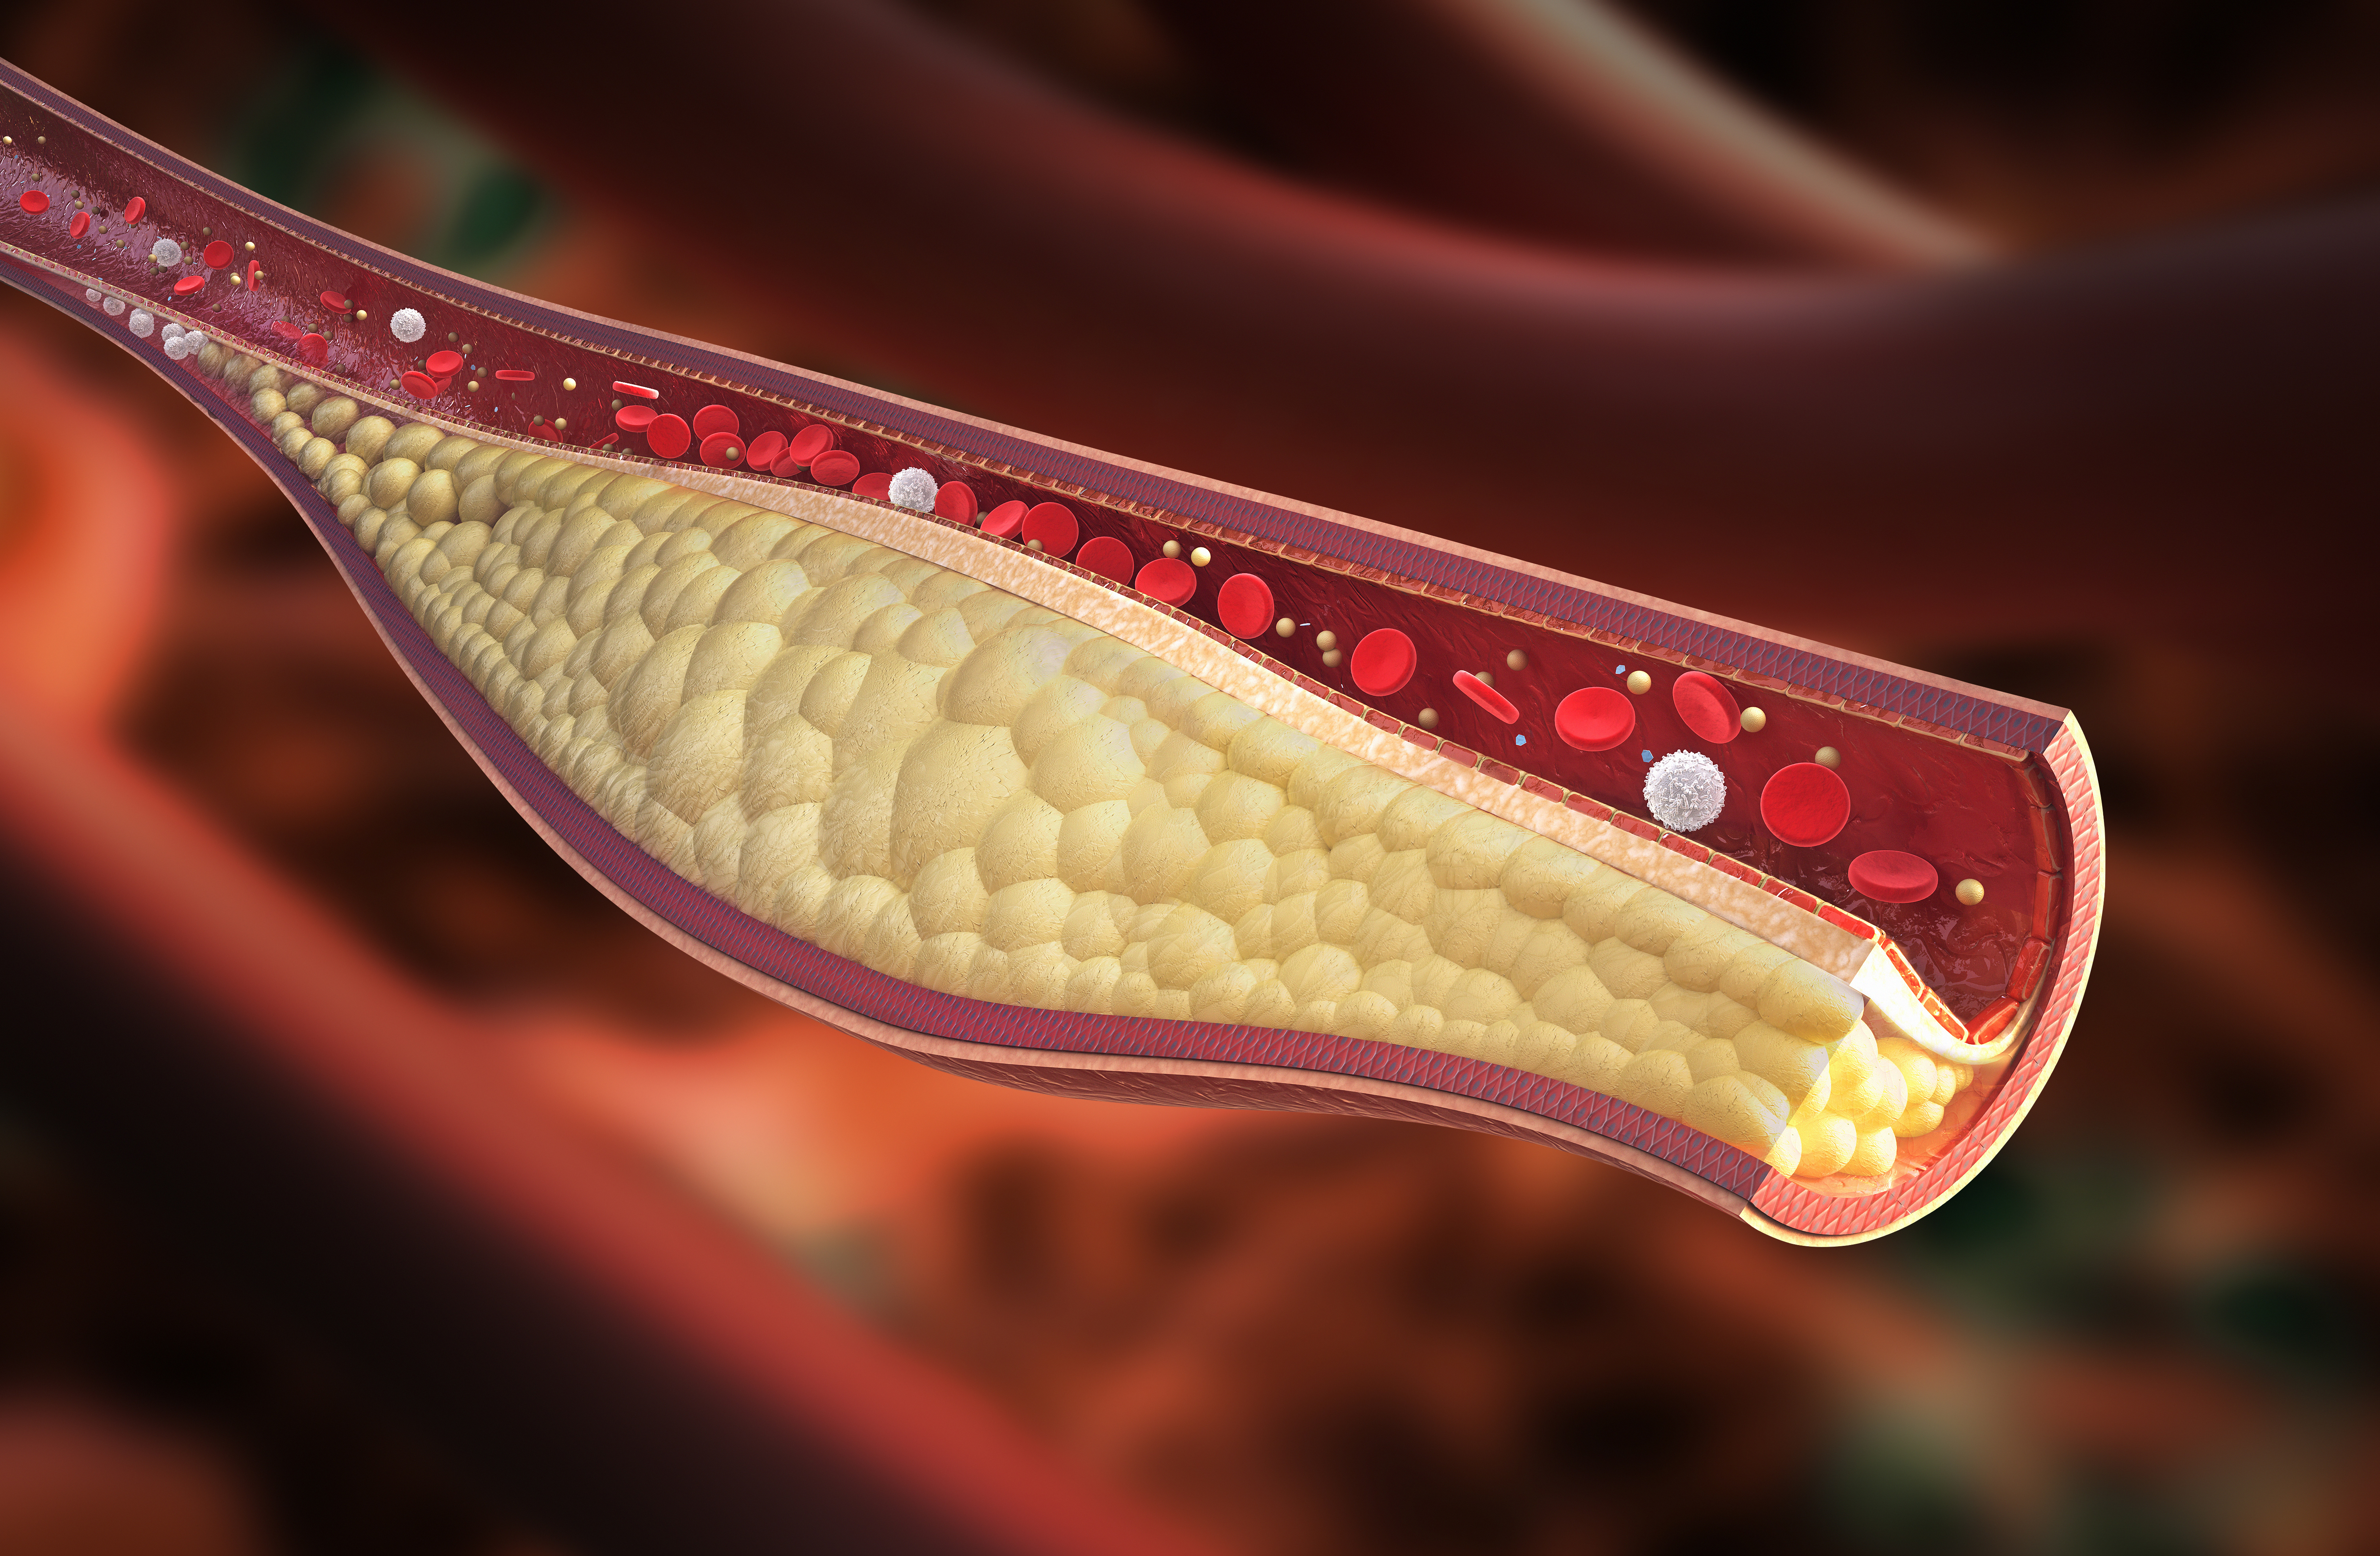 Preclinical Study Shows Safety, Efficacy, and Durability of Lowering LDL-Cholesterol Levels Long-Term in Non-Human Primates